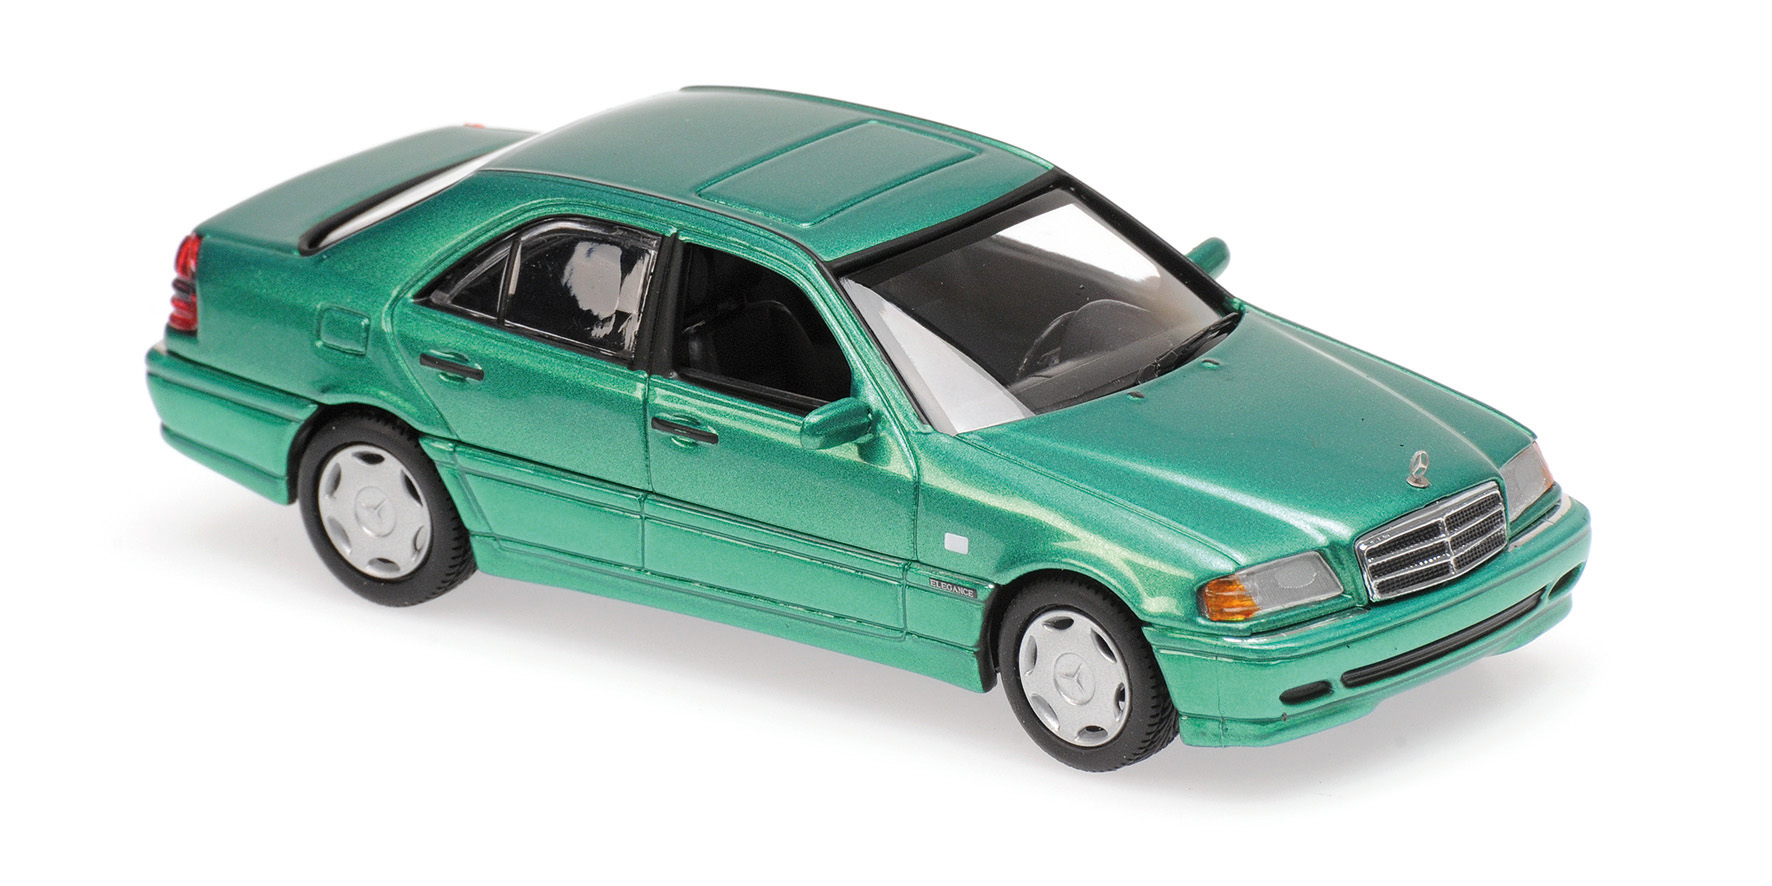 Mercedes-Benz C-Class 1997 Green Metallic